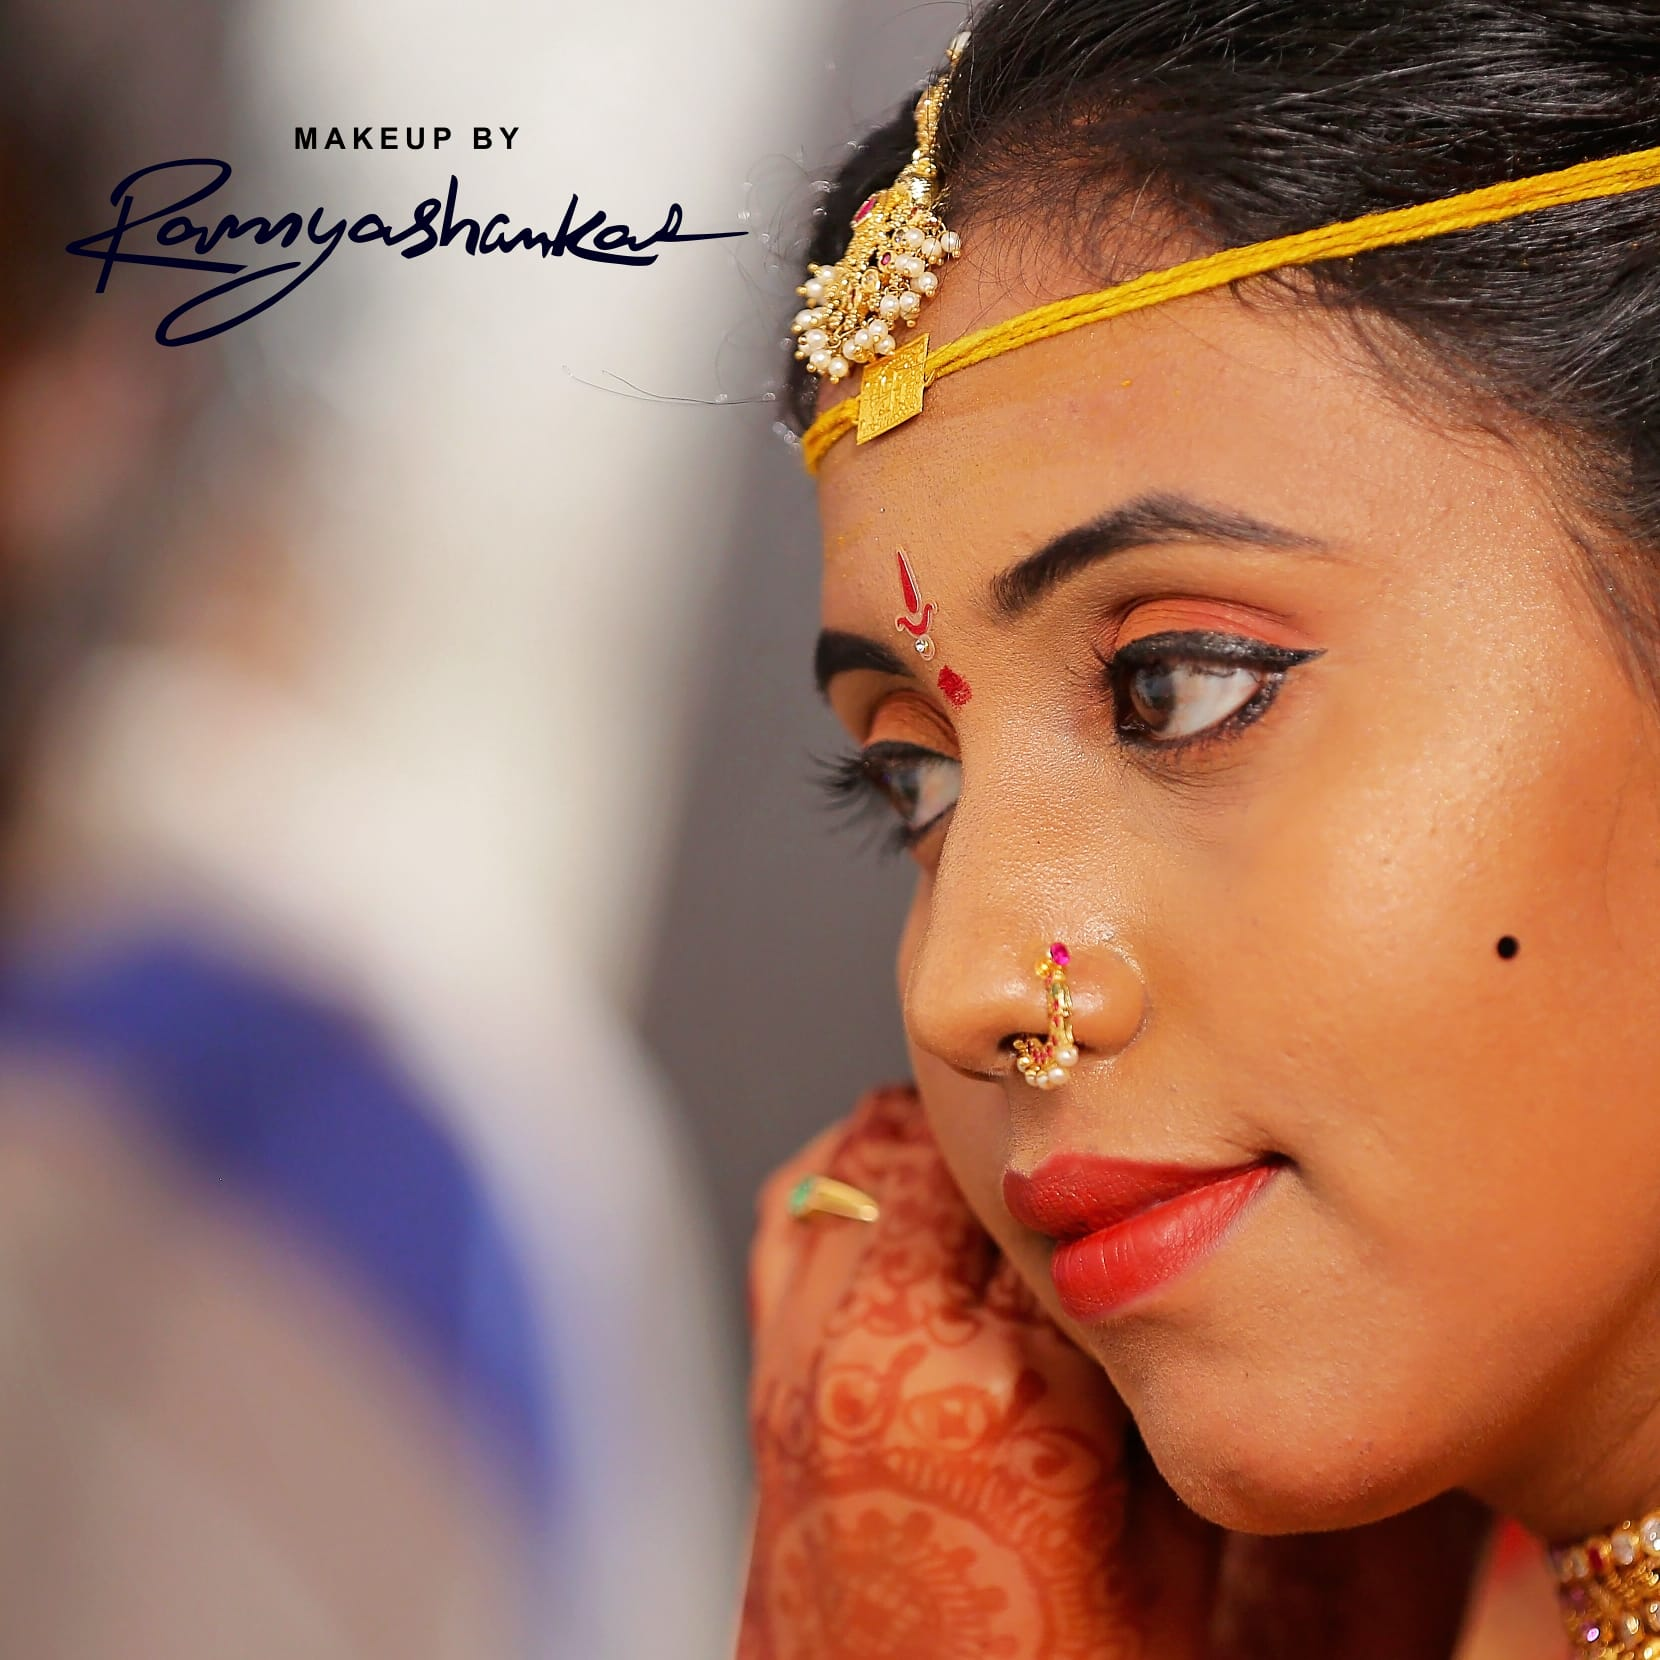 ramya-shankar-makeup-artist-hyderabad